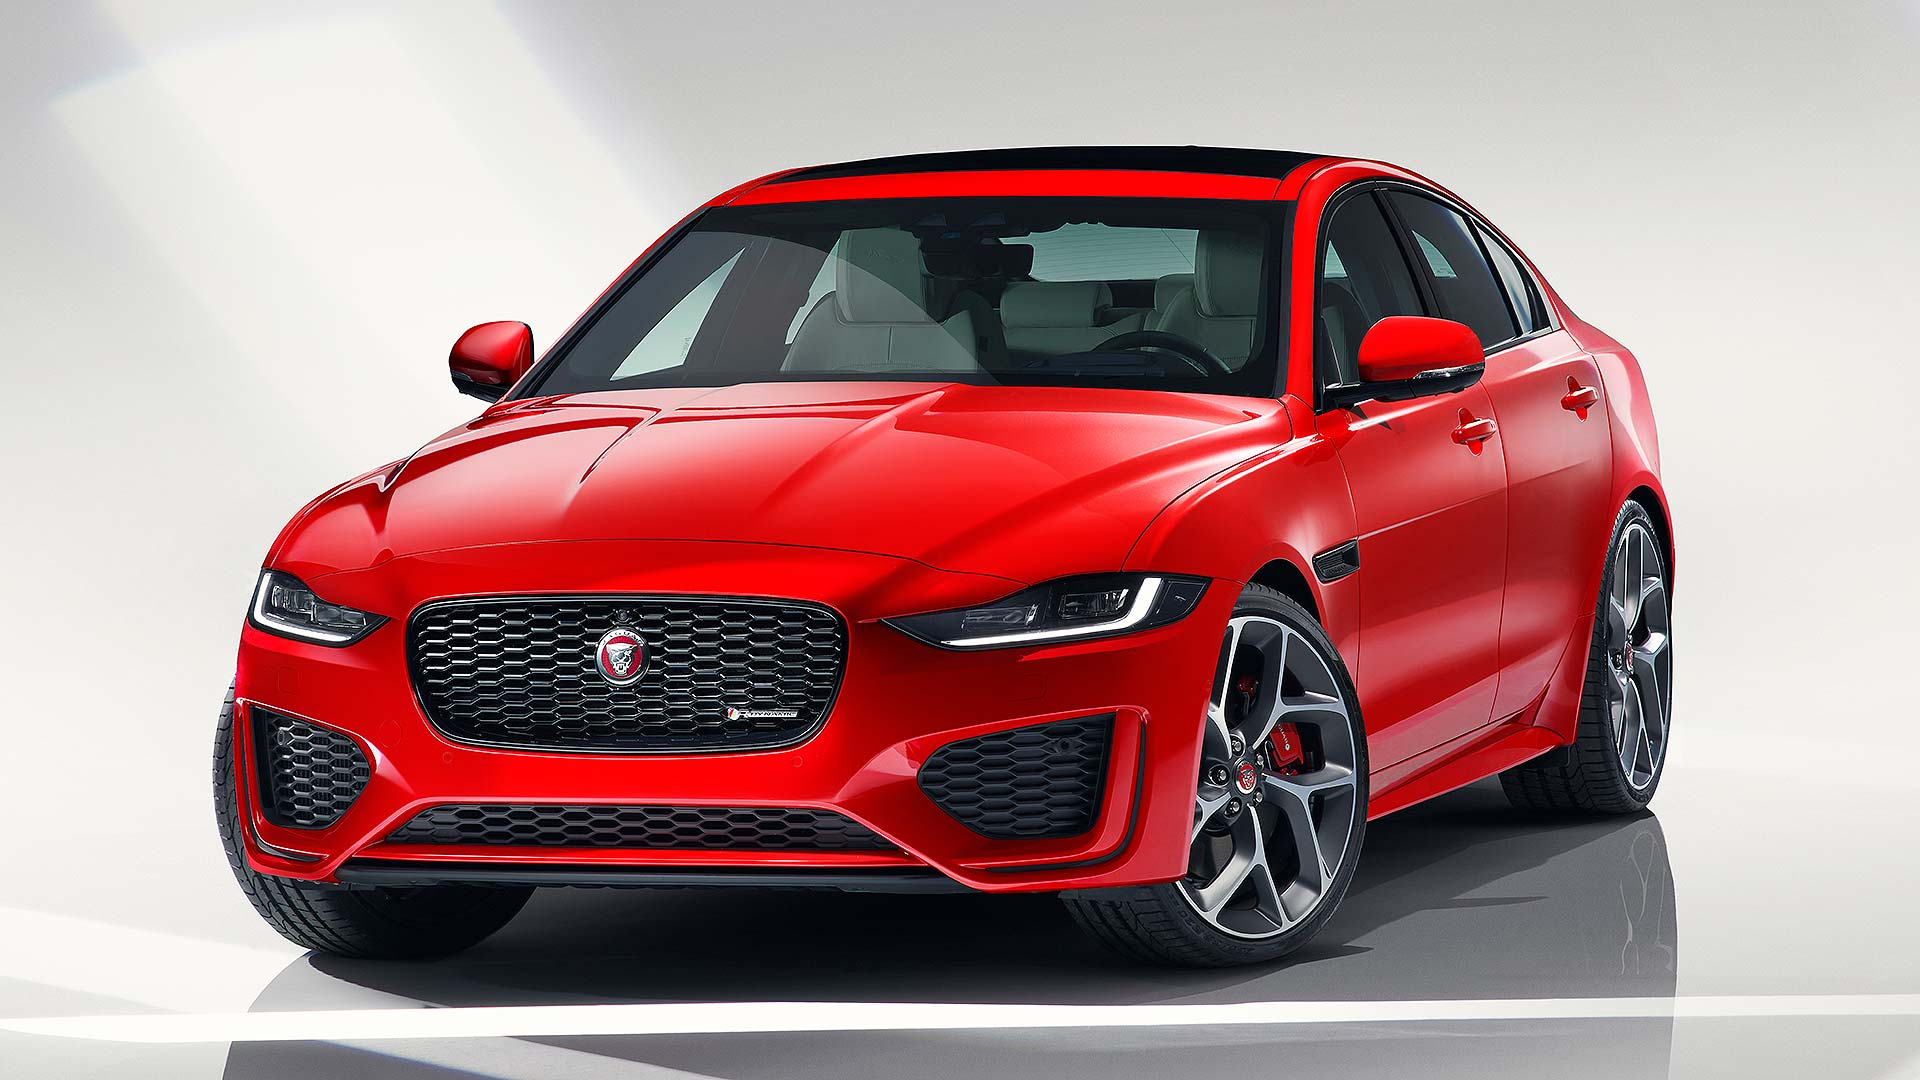 jaguar xe overhauled with new gadgets and 'cleanest in